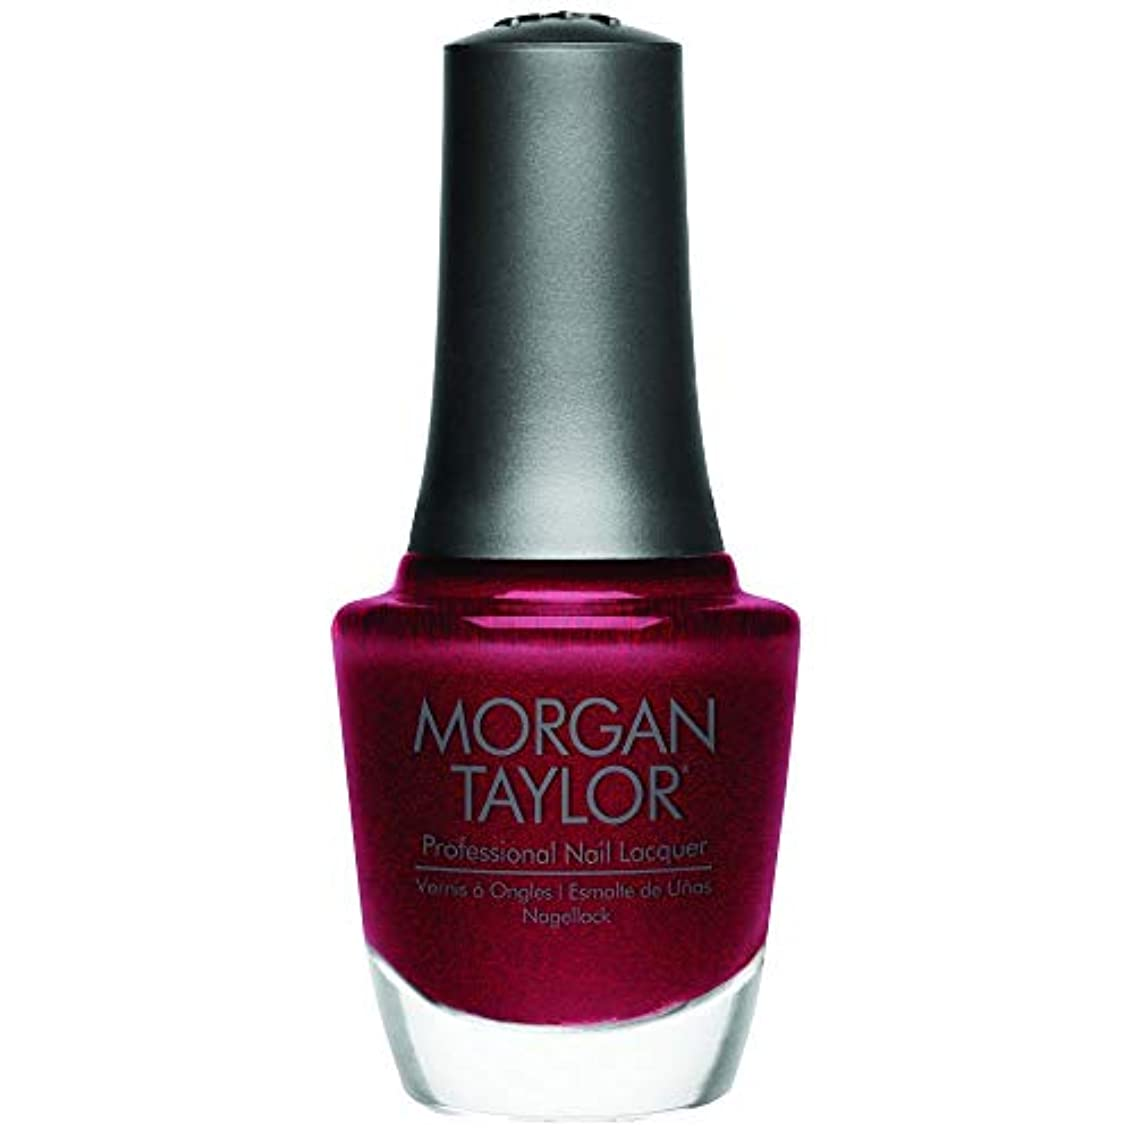 がんばり続ける準備した丈夫Morgan Taylor - Professional Nail Lacquer - I'm So Hot - 15 mL / 0.5oz